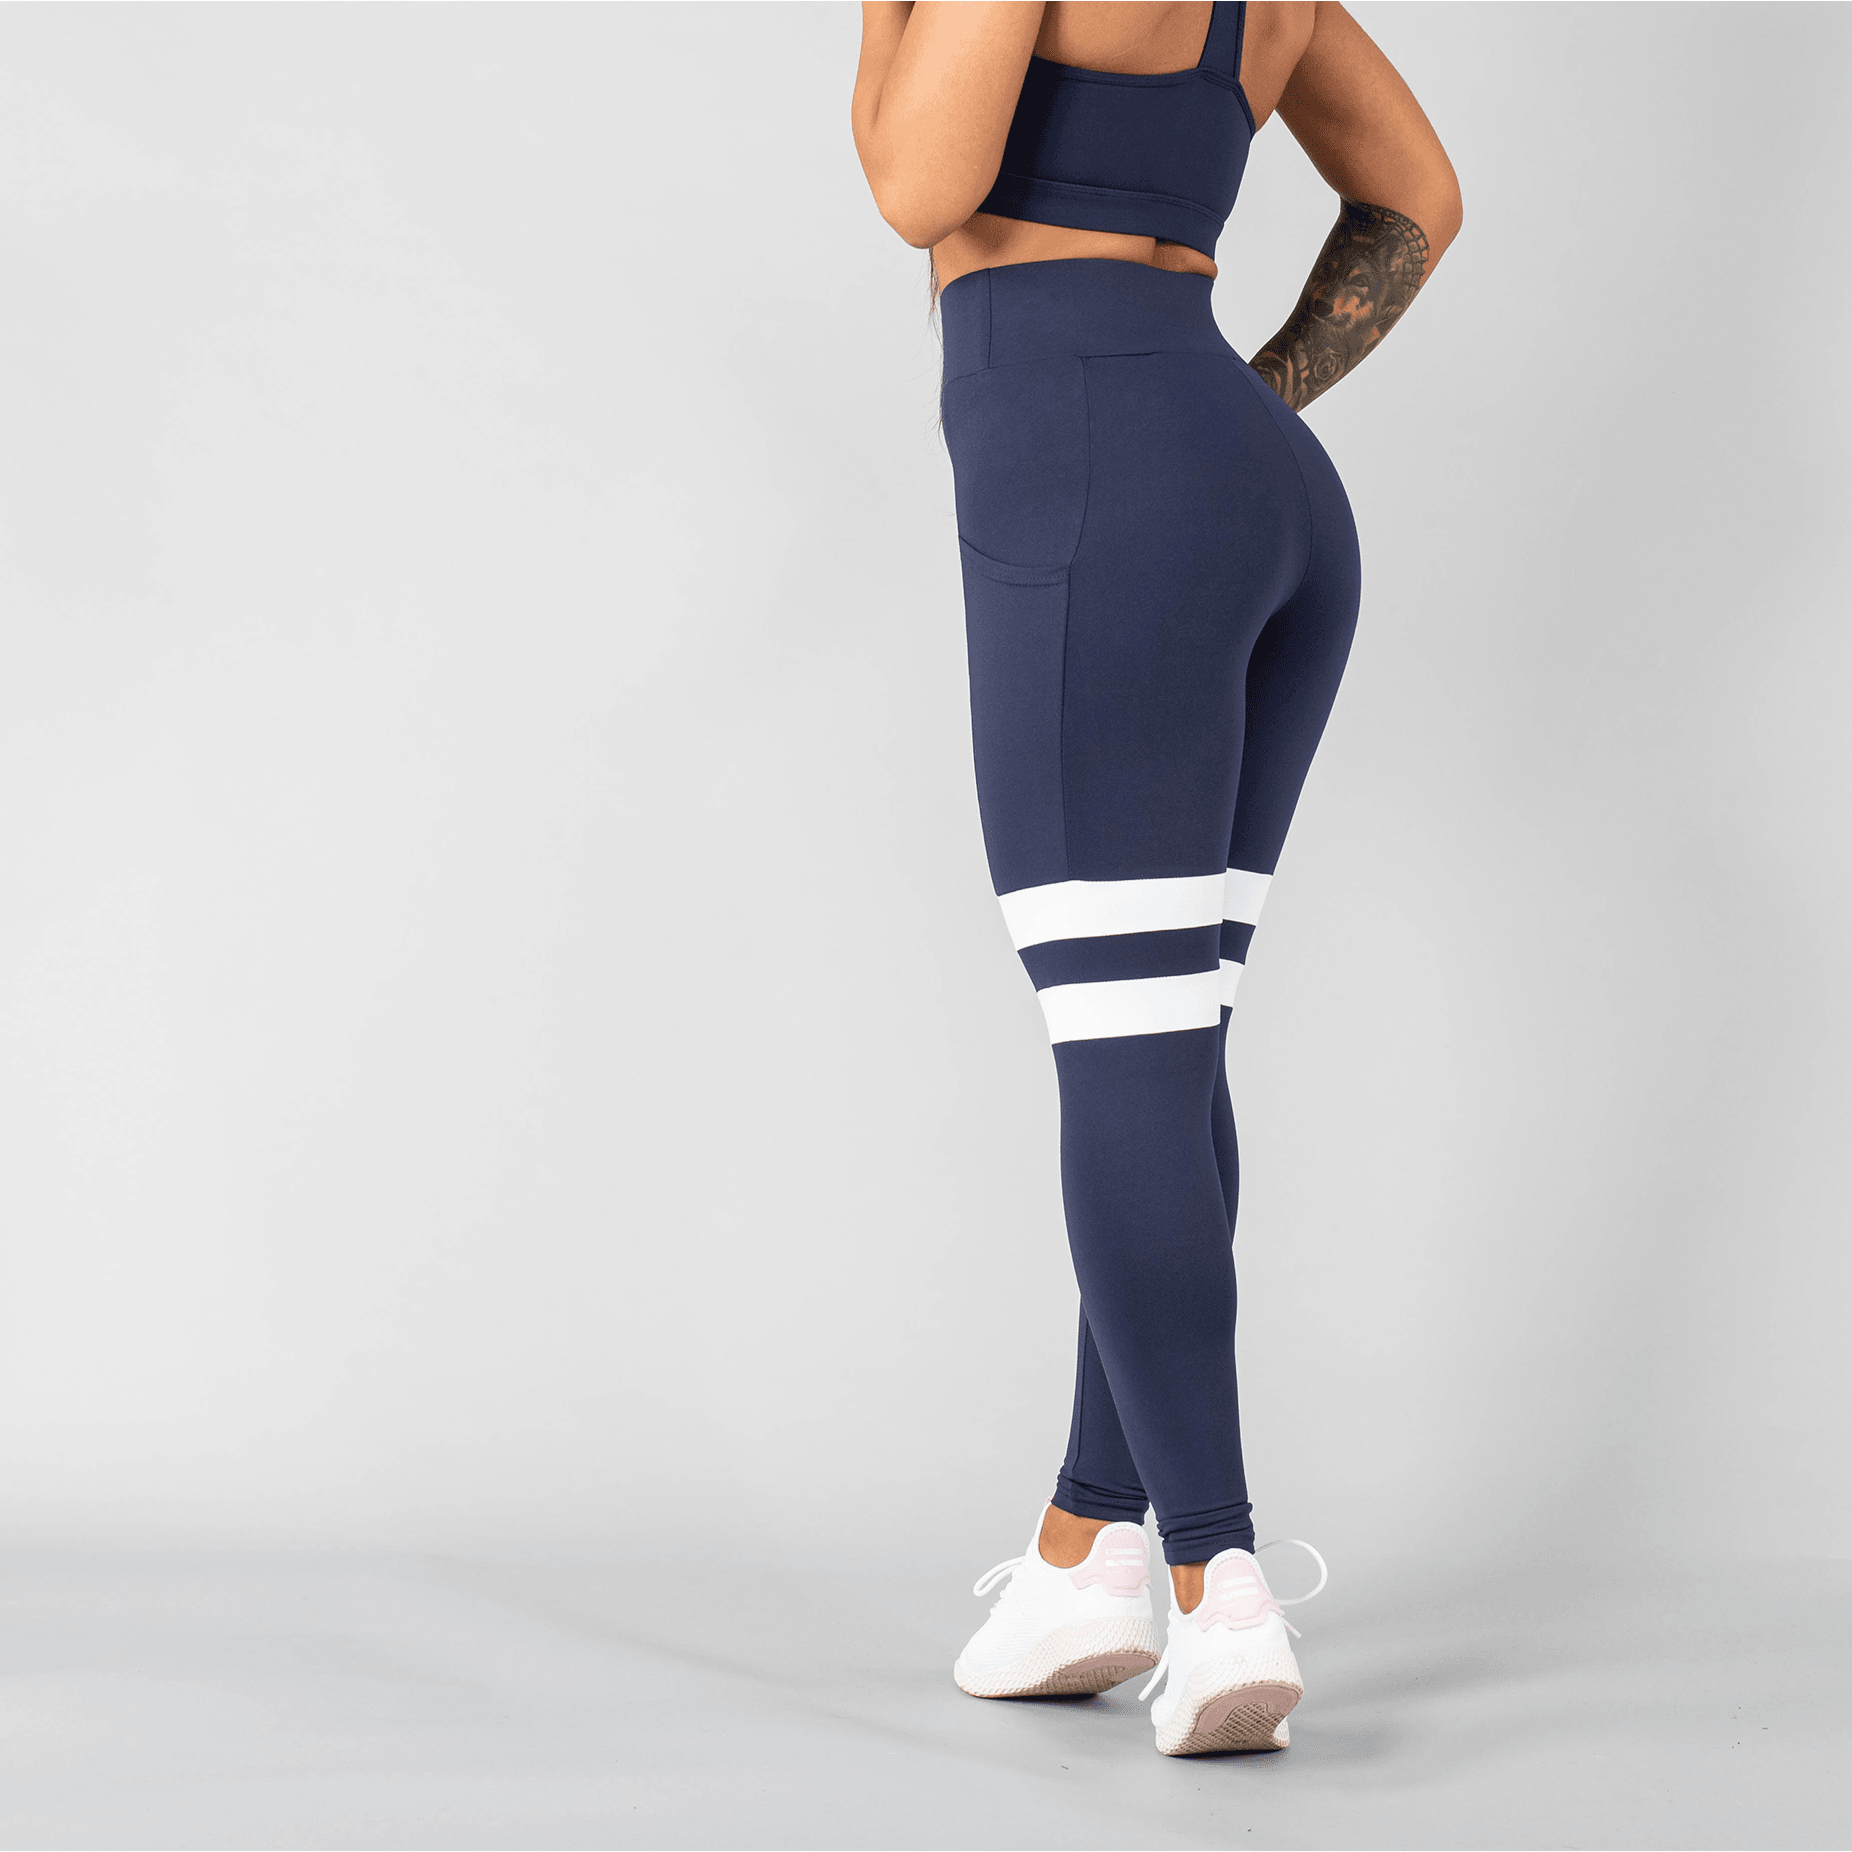 Versa Forma | Vivekk Leggings - Navy